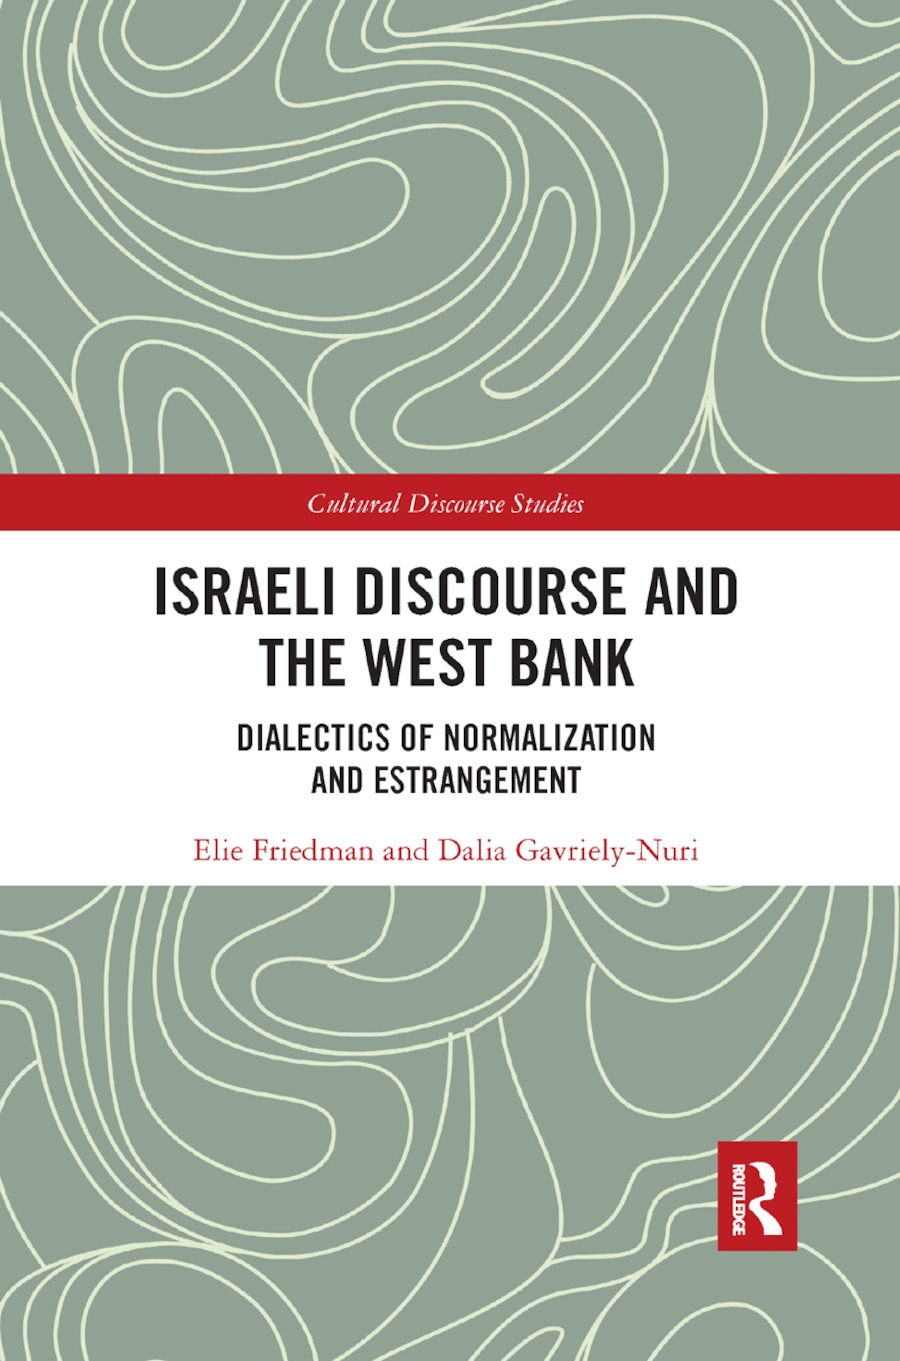 Israeli Discourse and the West Bank